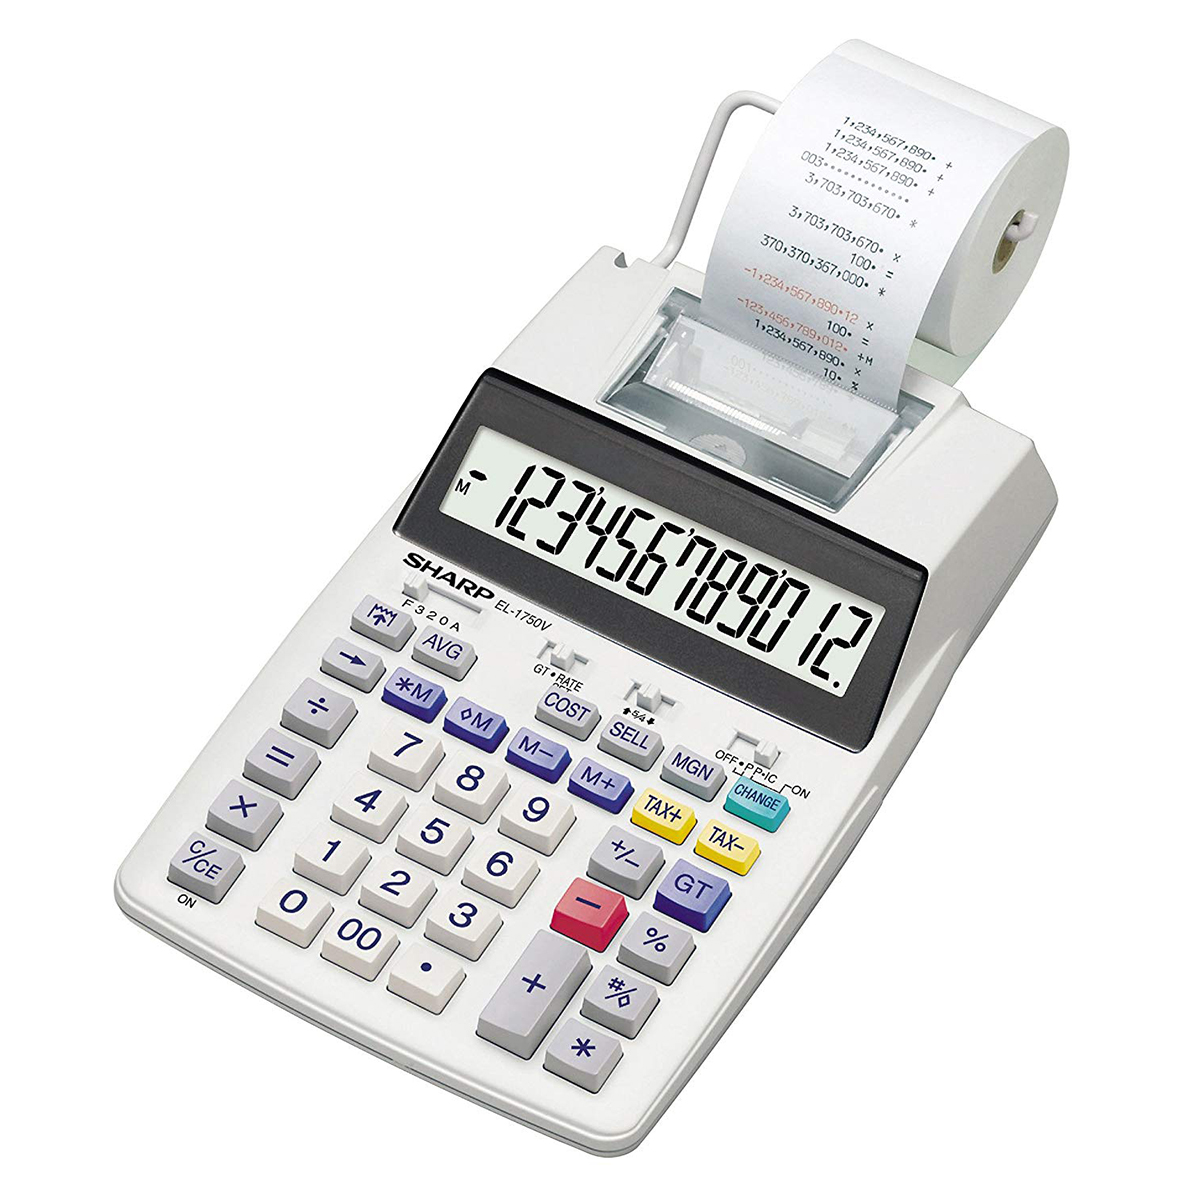 Sharp SH-EL1750V Print and Display Calculator